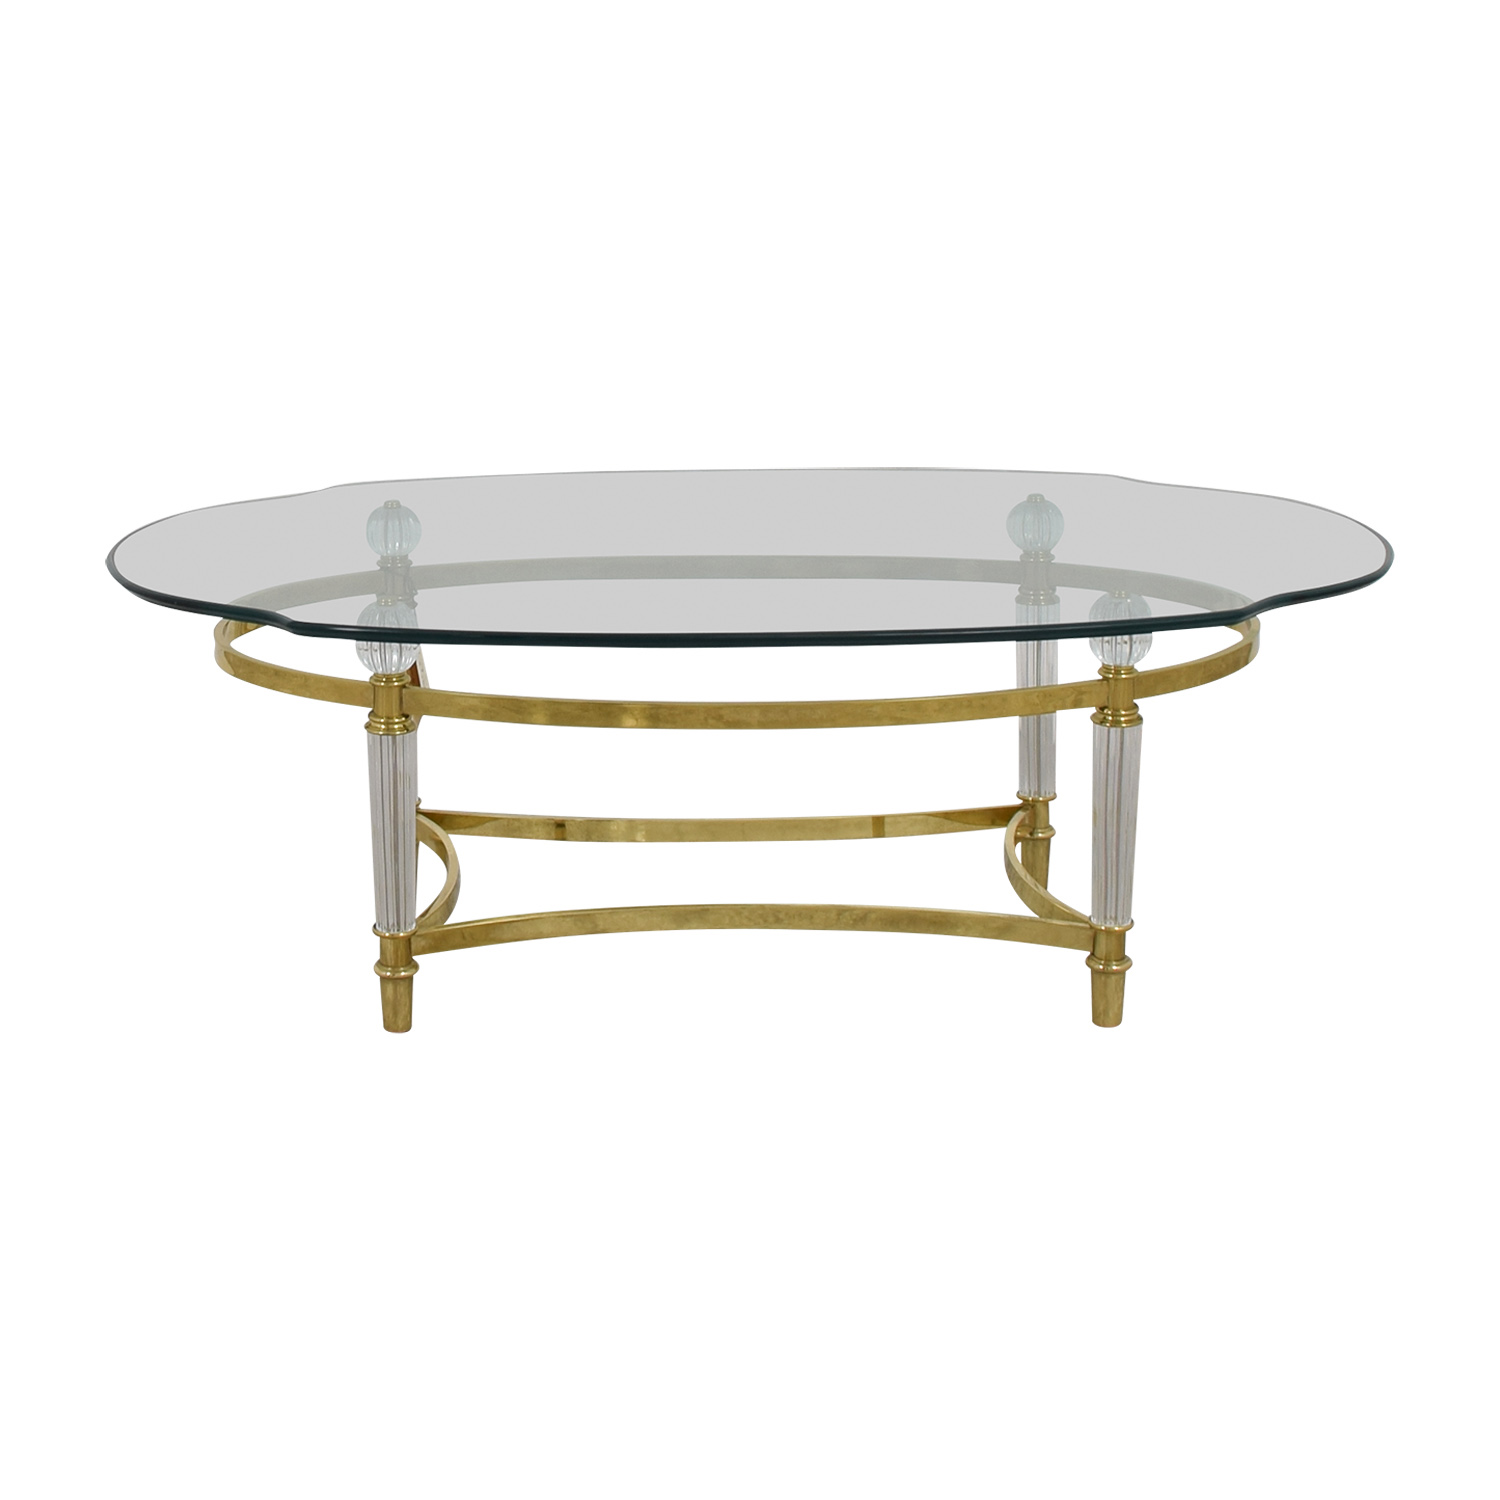 La Barge La Barge Brass and Italian Crystal Cocktail Table price